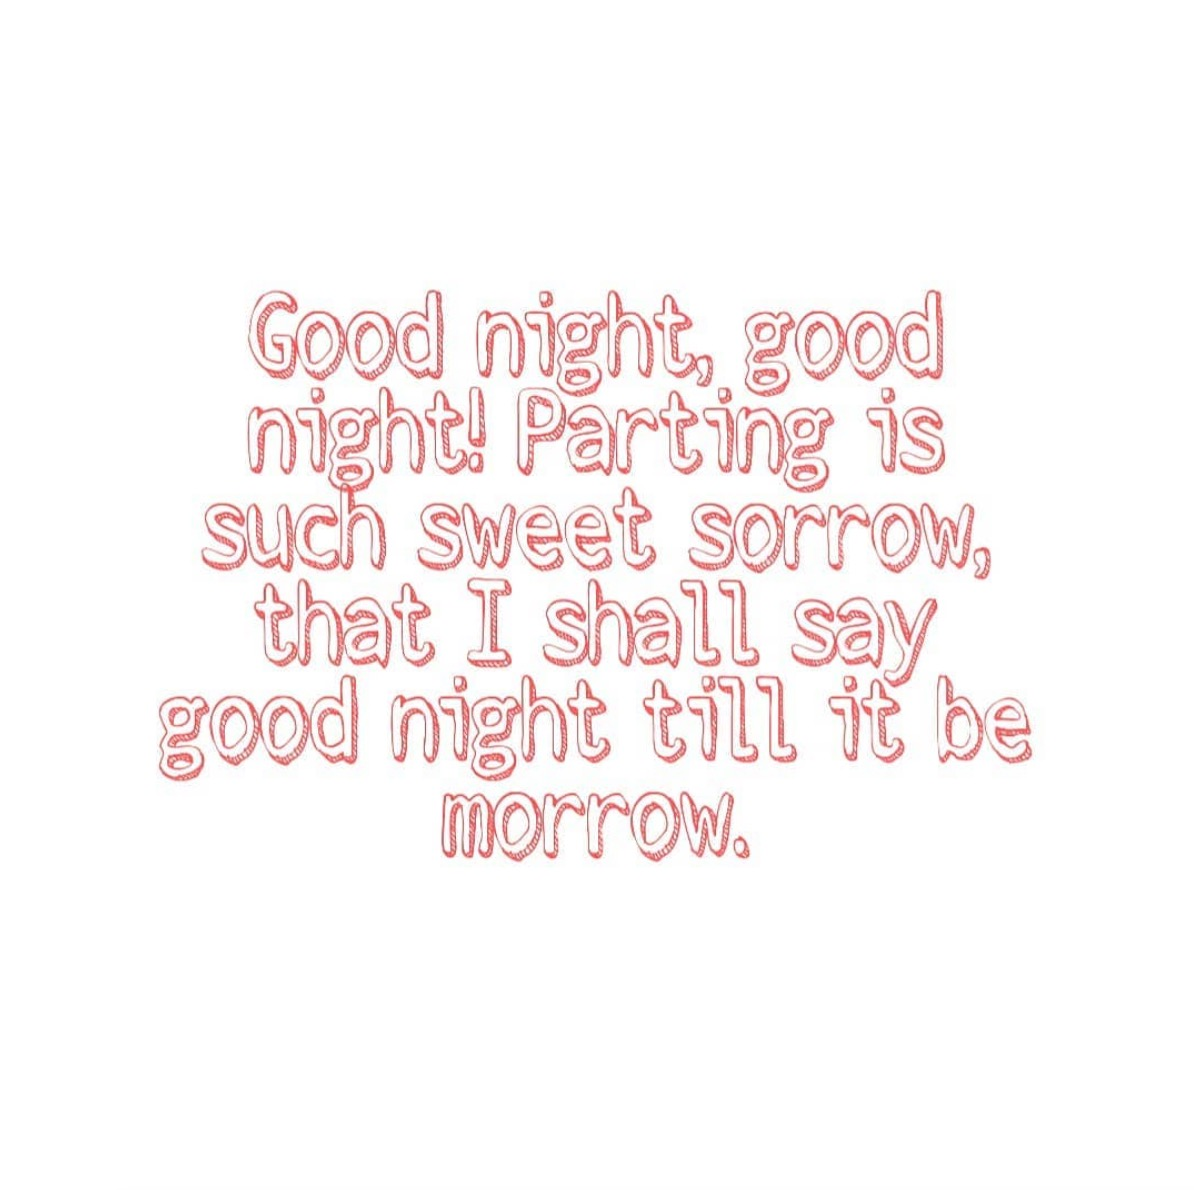 Good Night-Parting Is Such